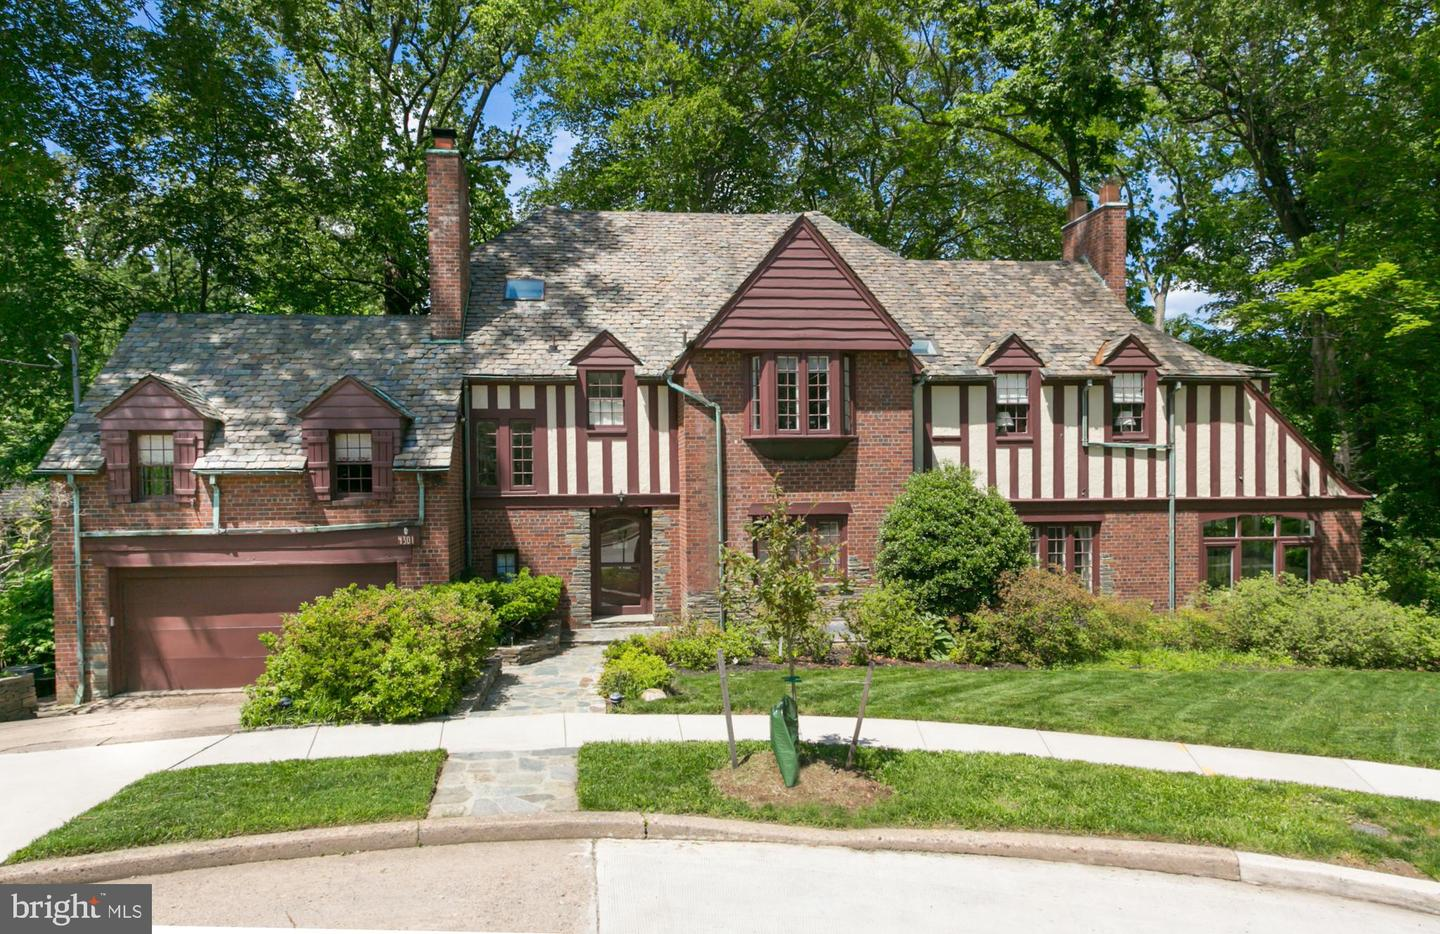 Single Family for Sale at 4301 Forest Ln NW 4301 Forest Ln NW Washington, District Of Columbia 20007 United States